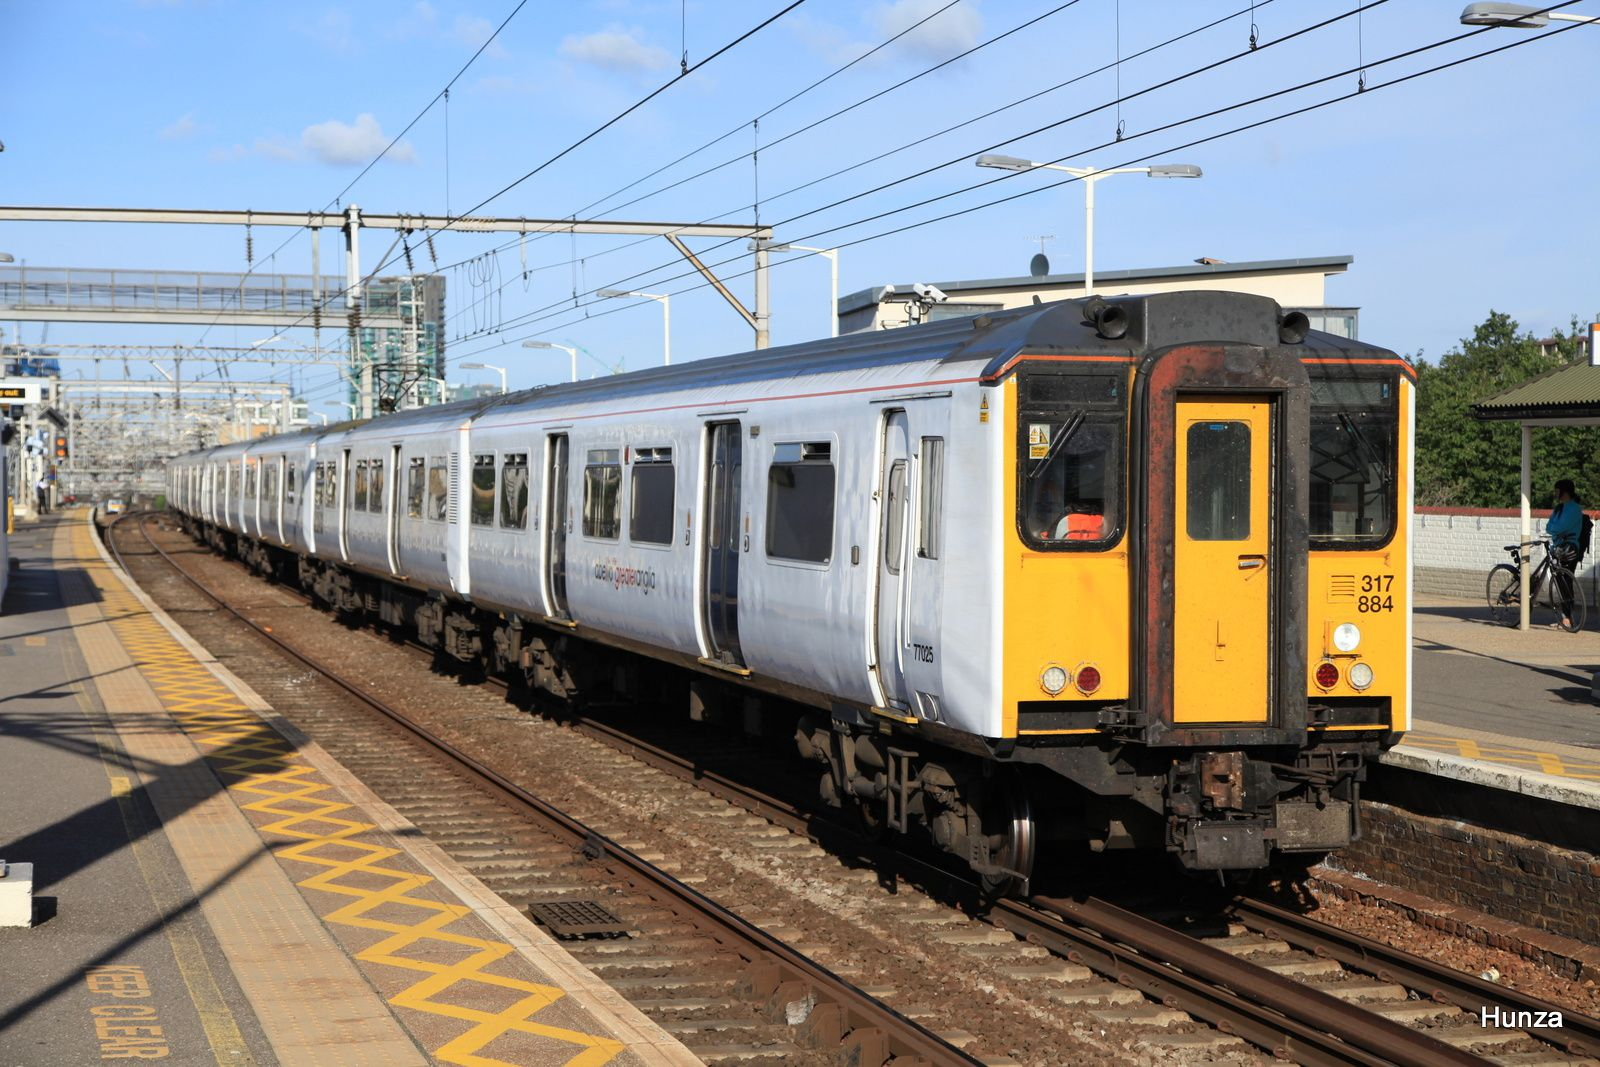 Bethnal Green station : class 317/8 n°317 884 de la compagnie Abellio Greater Anglia